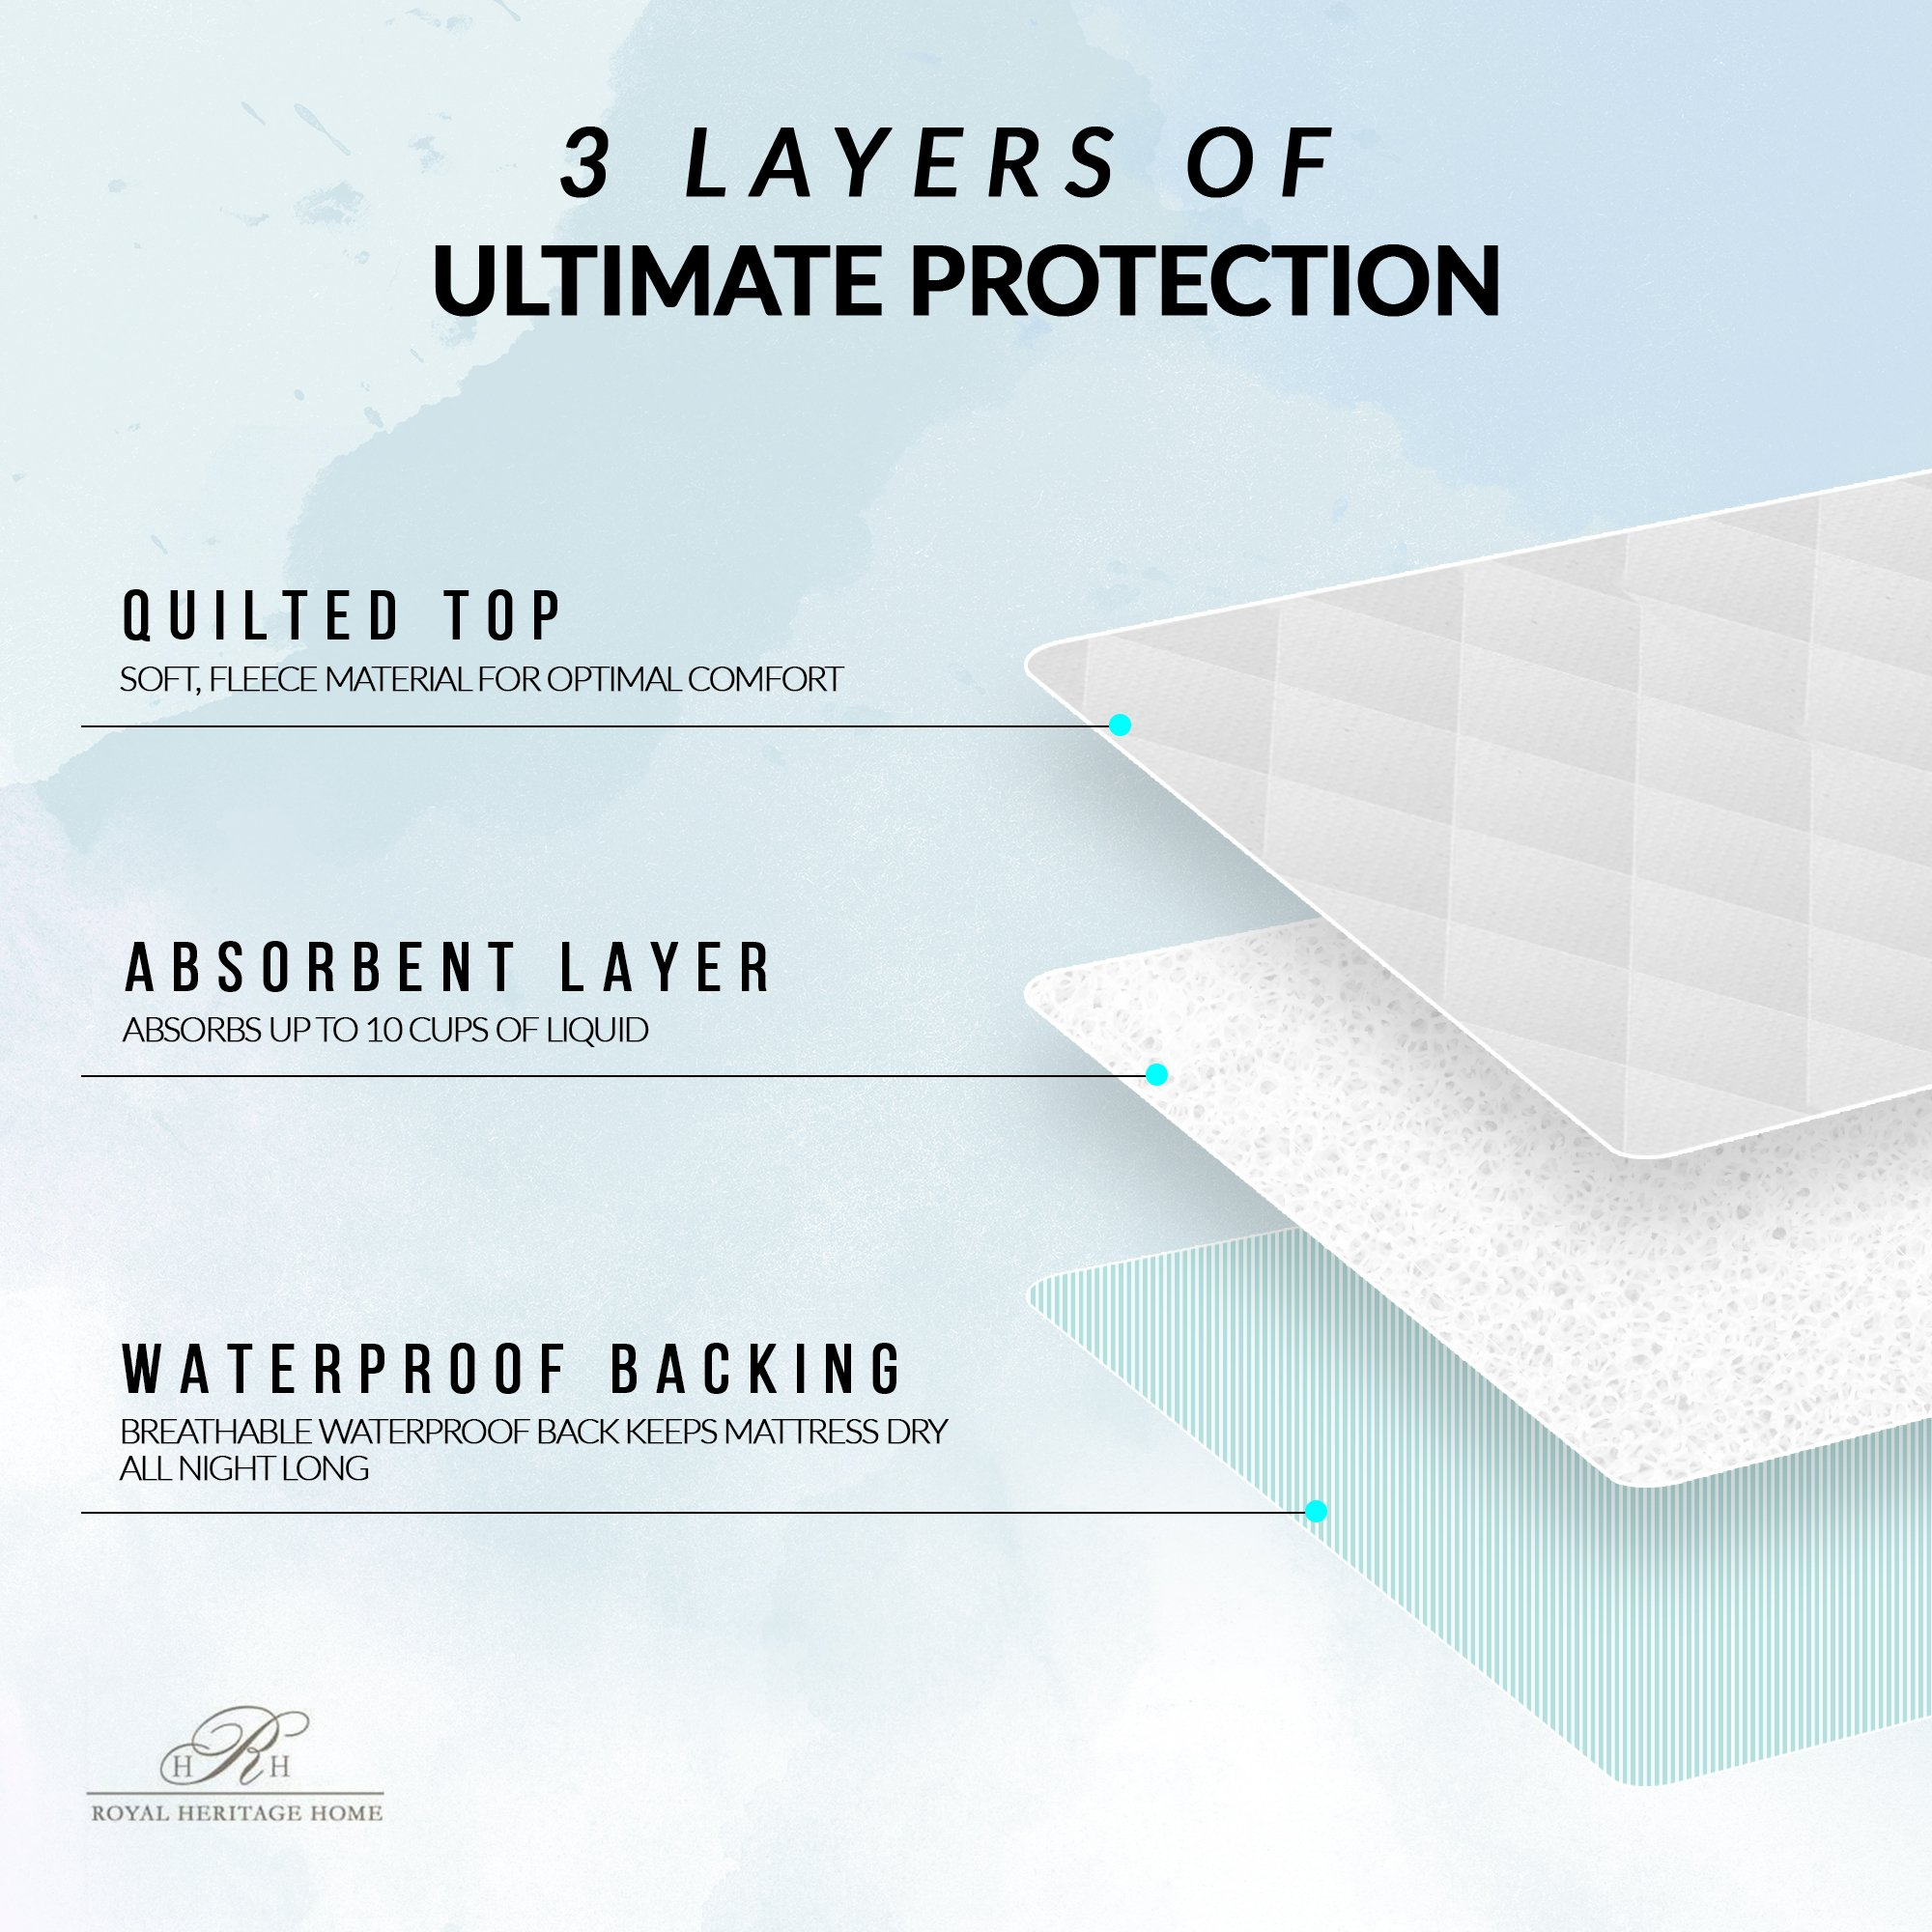 Reusable Commercial Quality Ultra Waterproof Sheet and Mattress Pad Protector, All Sizes, 10 Cups Absorbency, Made in America. (34x76) by Royal Heritage Home (Image #6)